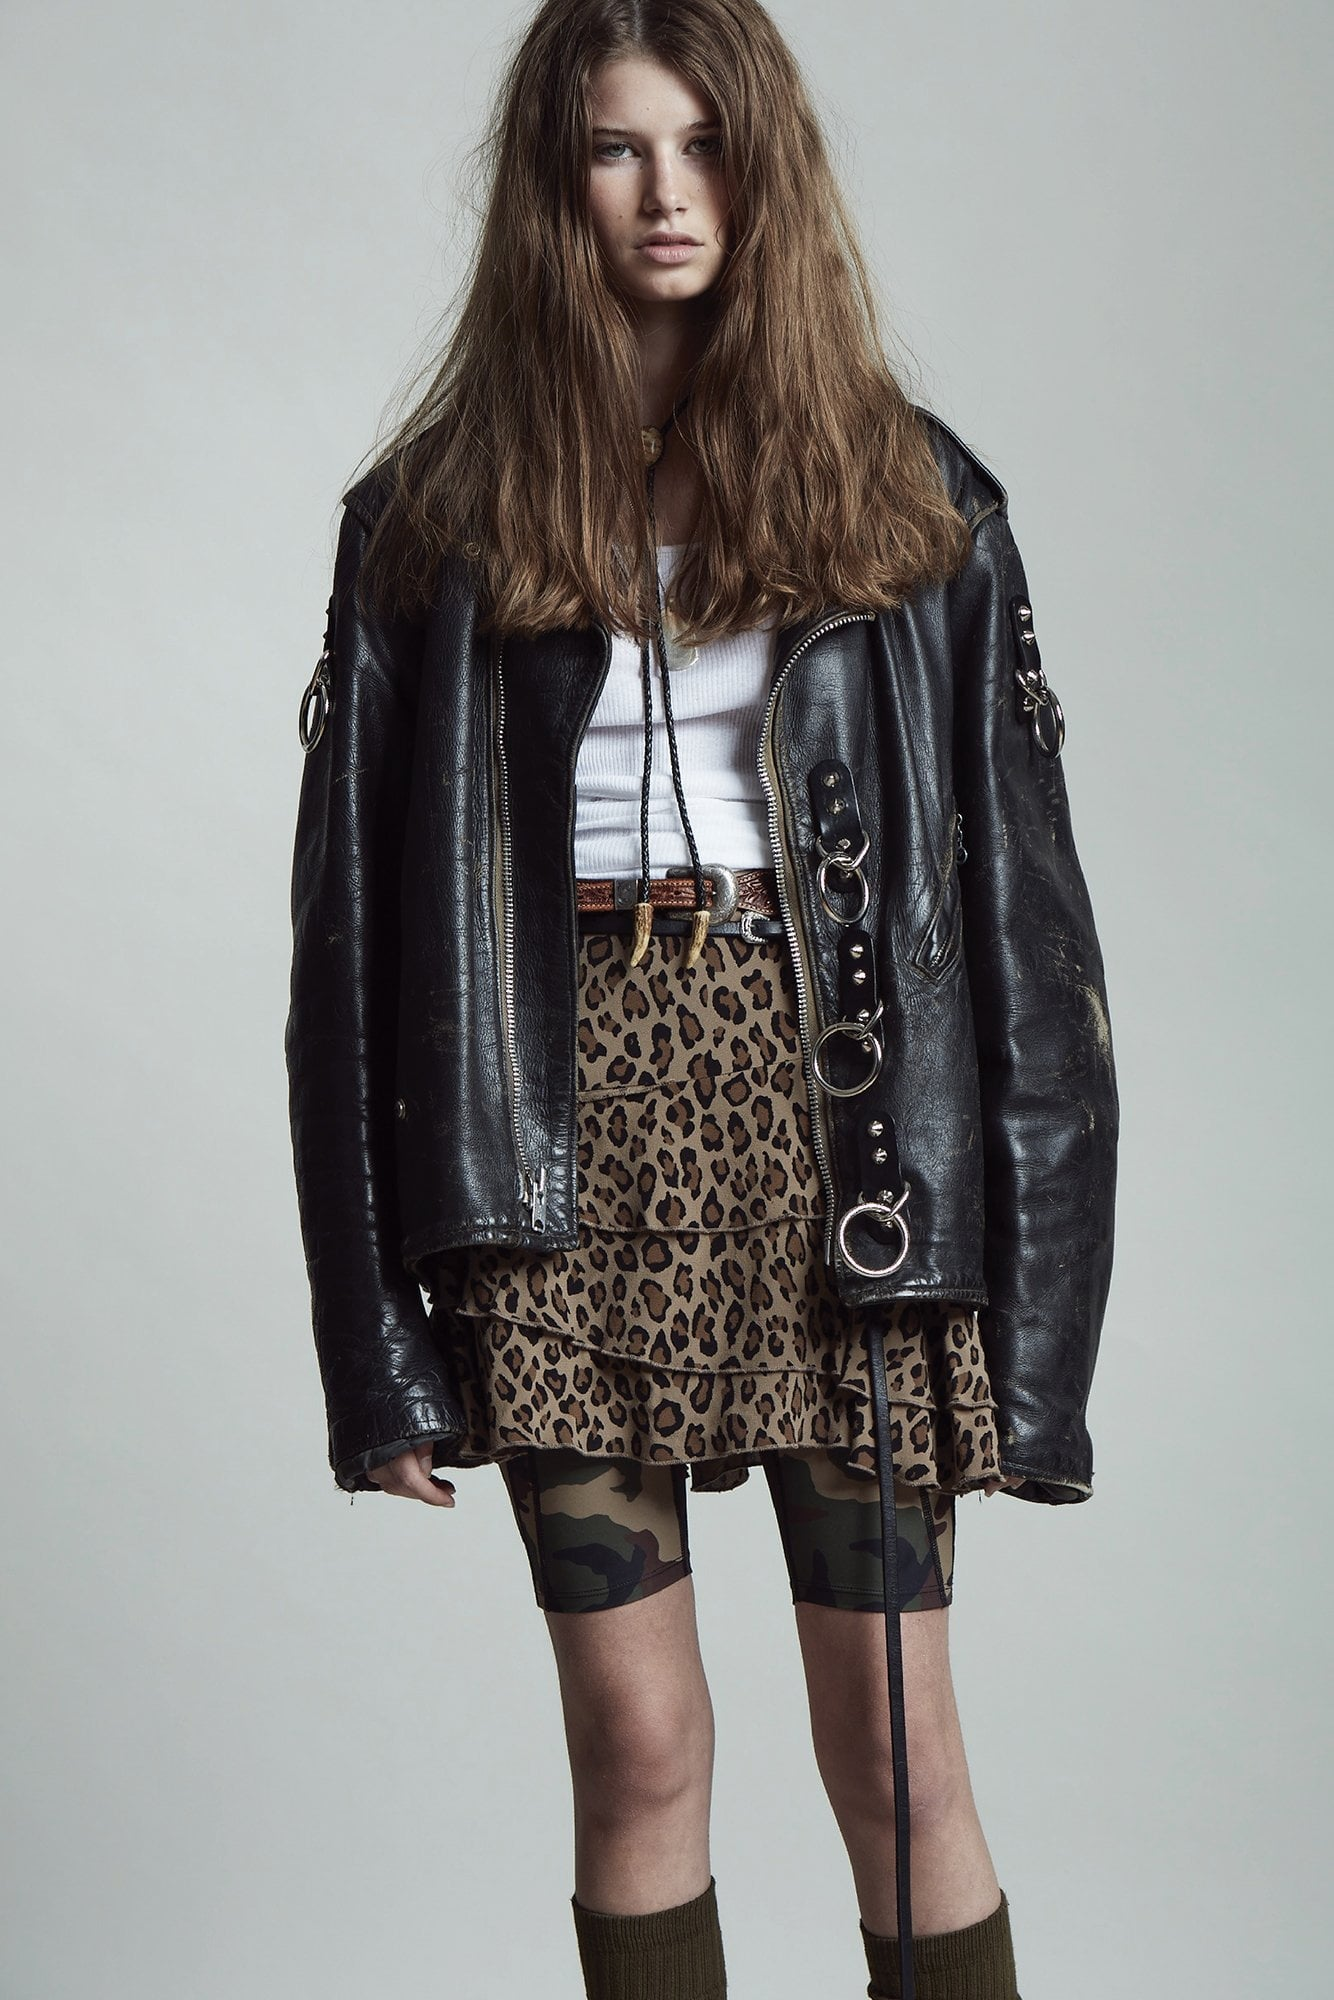 PS18 Lookbook Image 24